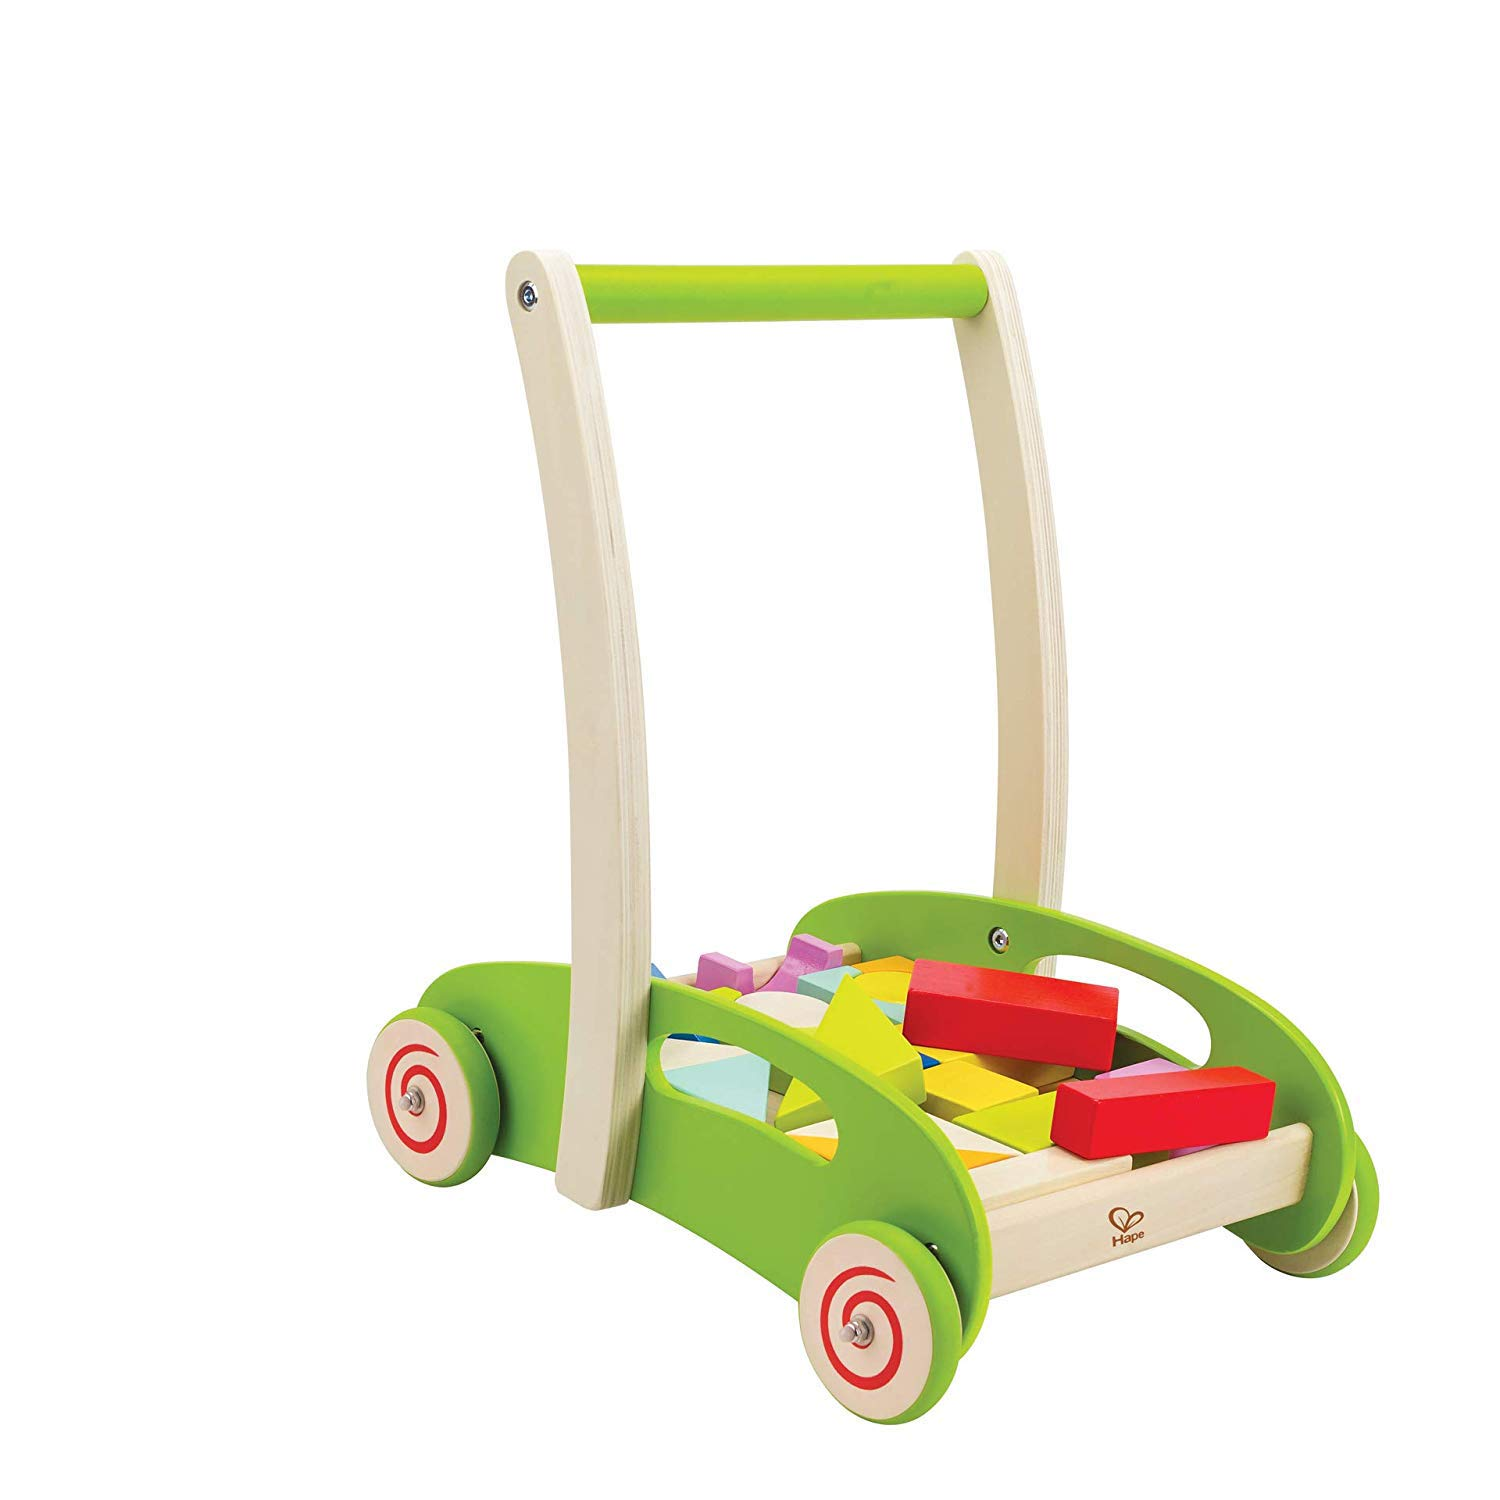 Top 15 Best Walking Toys for 1 Year Olds Mothers Should Consider 5